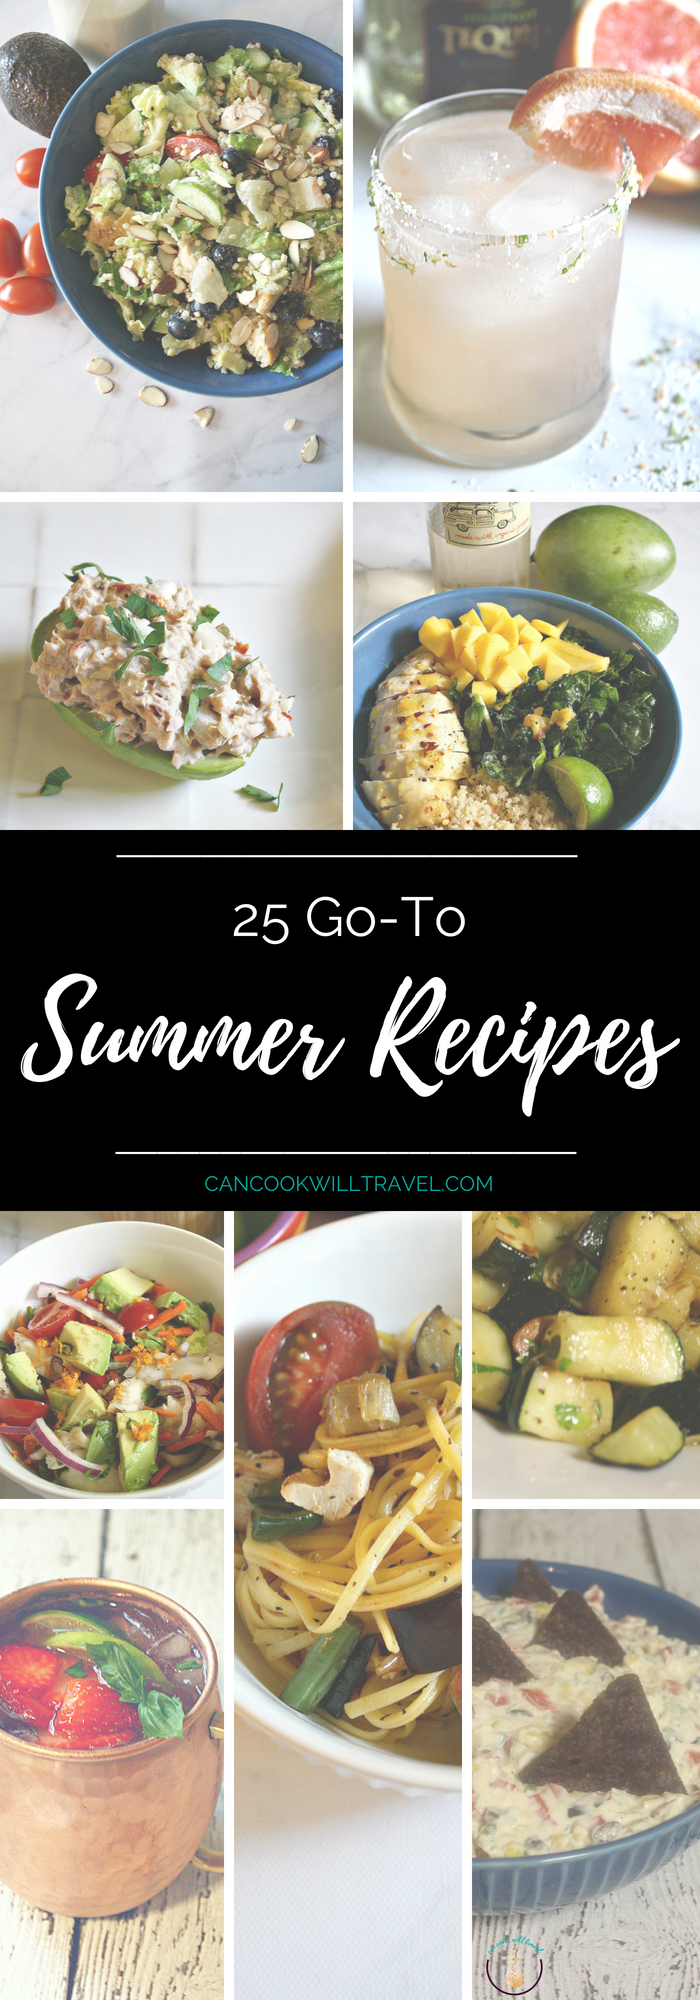 25 Summer Recipes_Tall